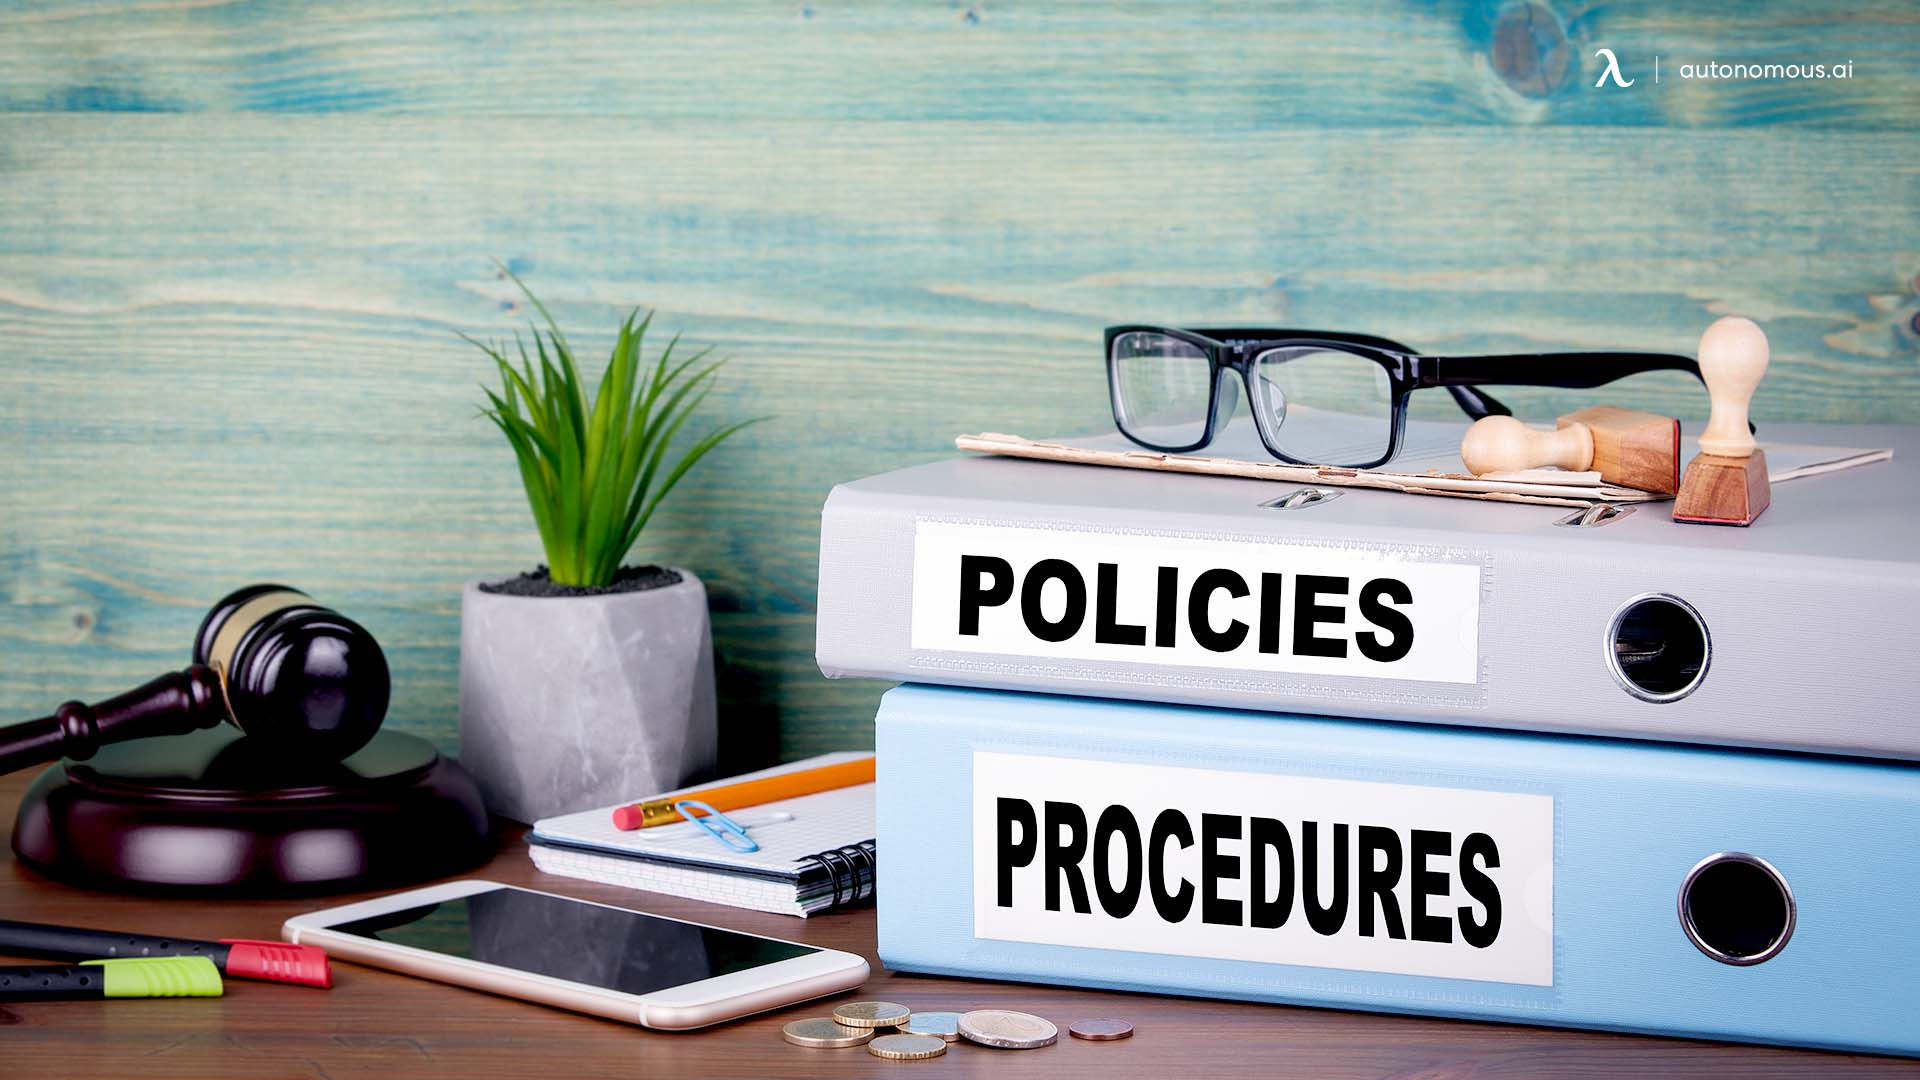 What Is a Work from Home Policy?